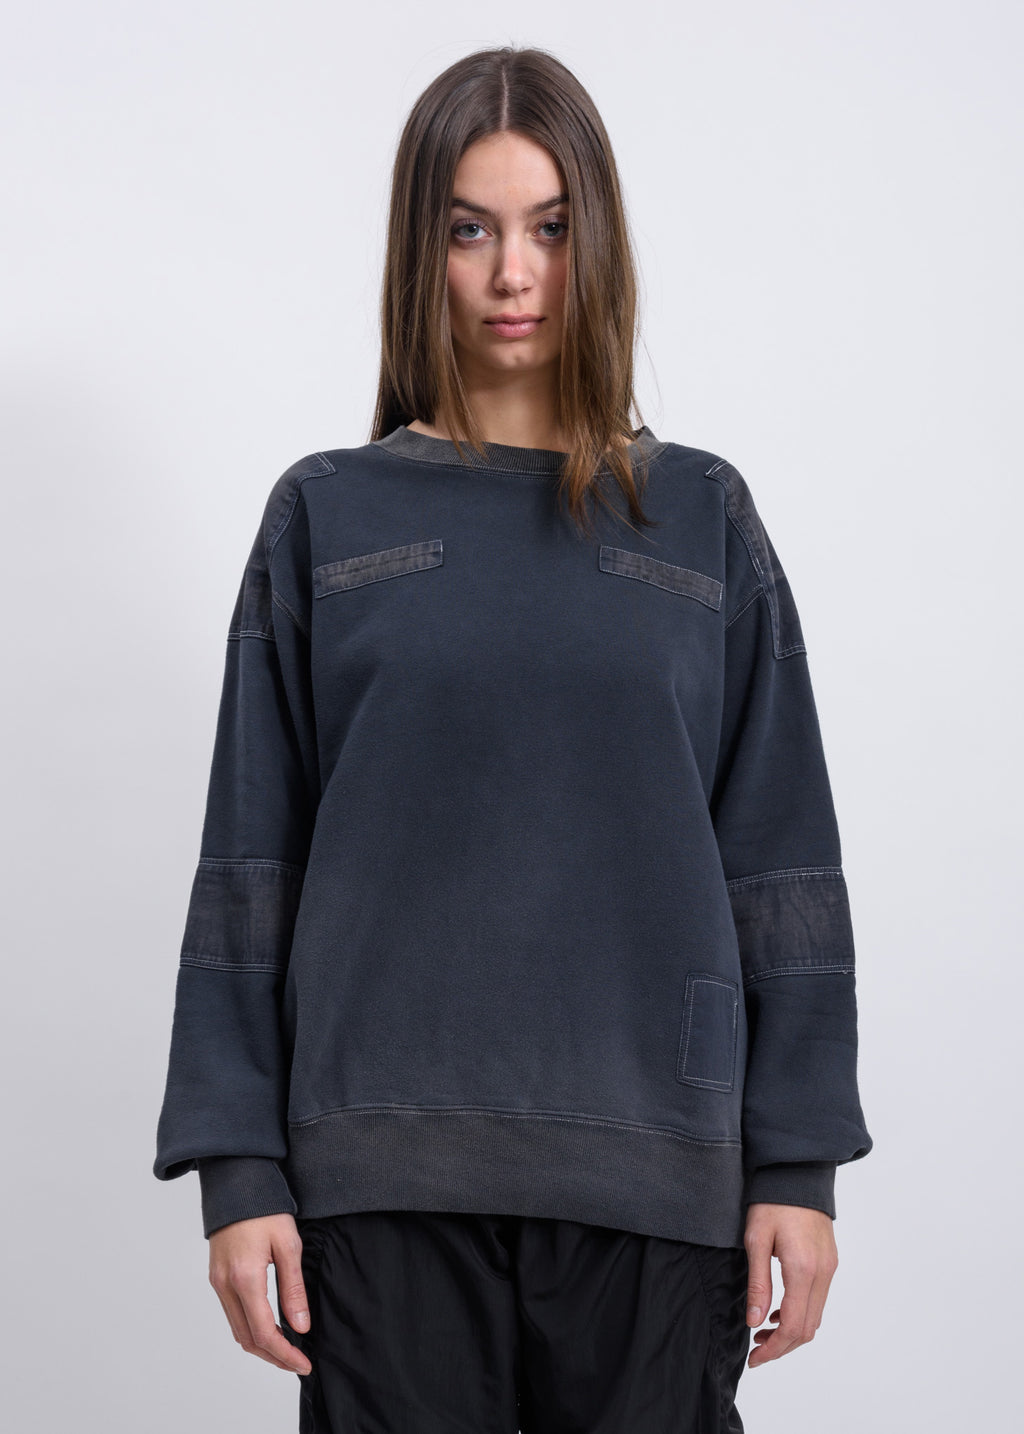 Black Bleach Patchwork Sweater